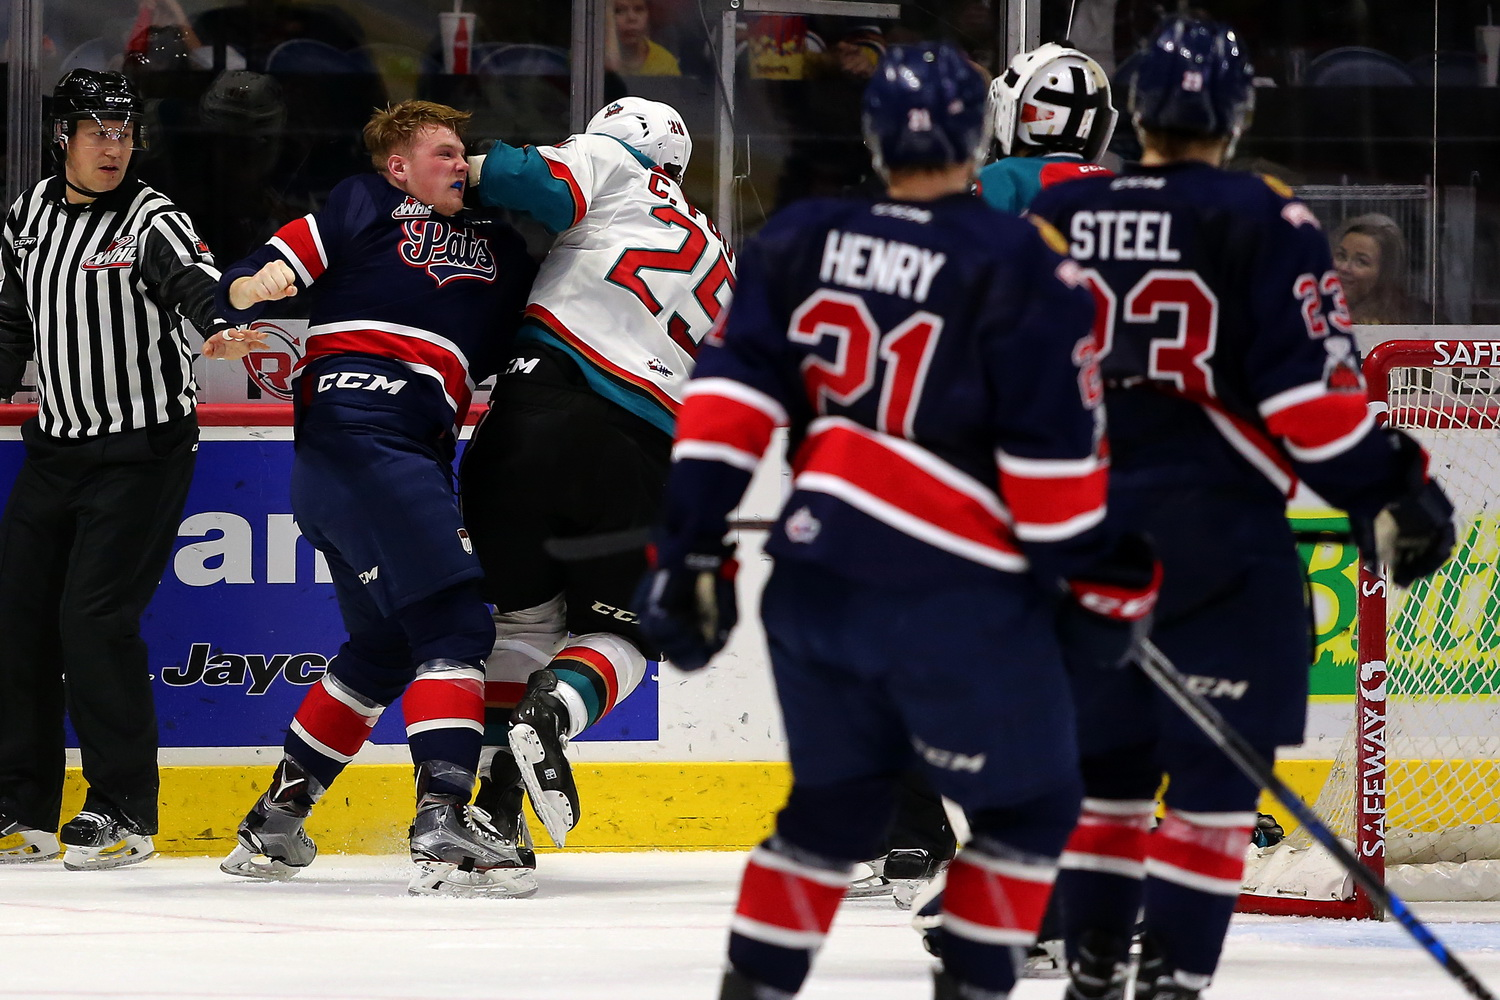 Teddies and fists fly in the Pats 7-5 loss to Kelowna